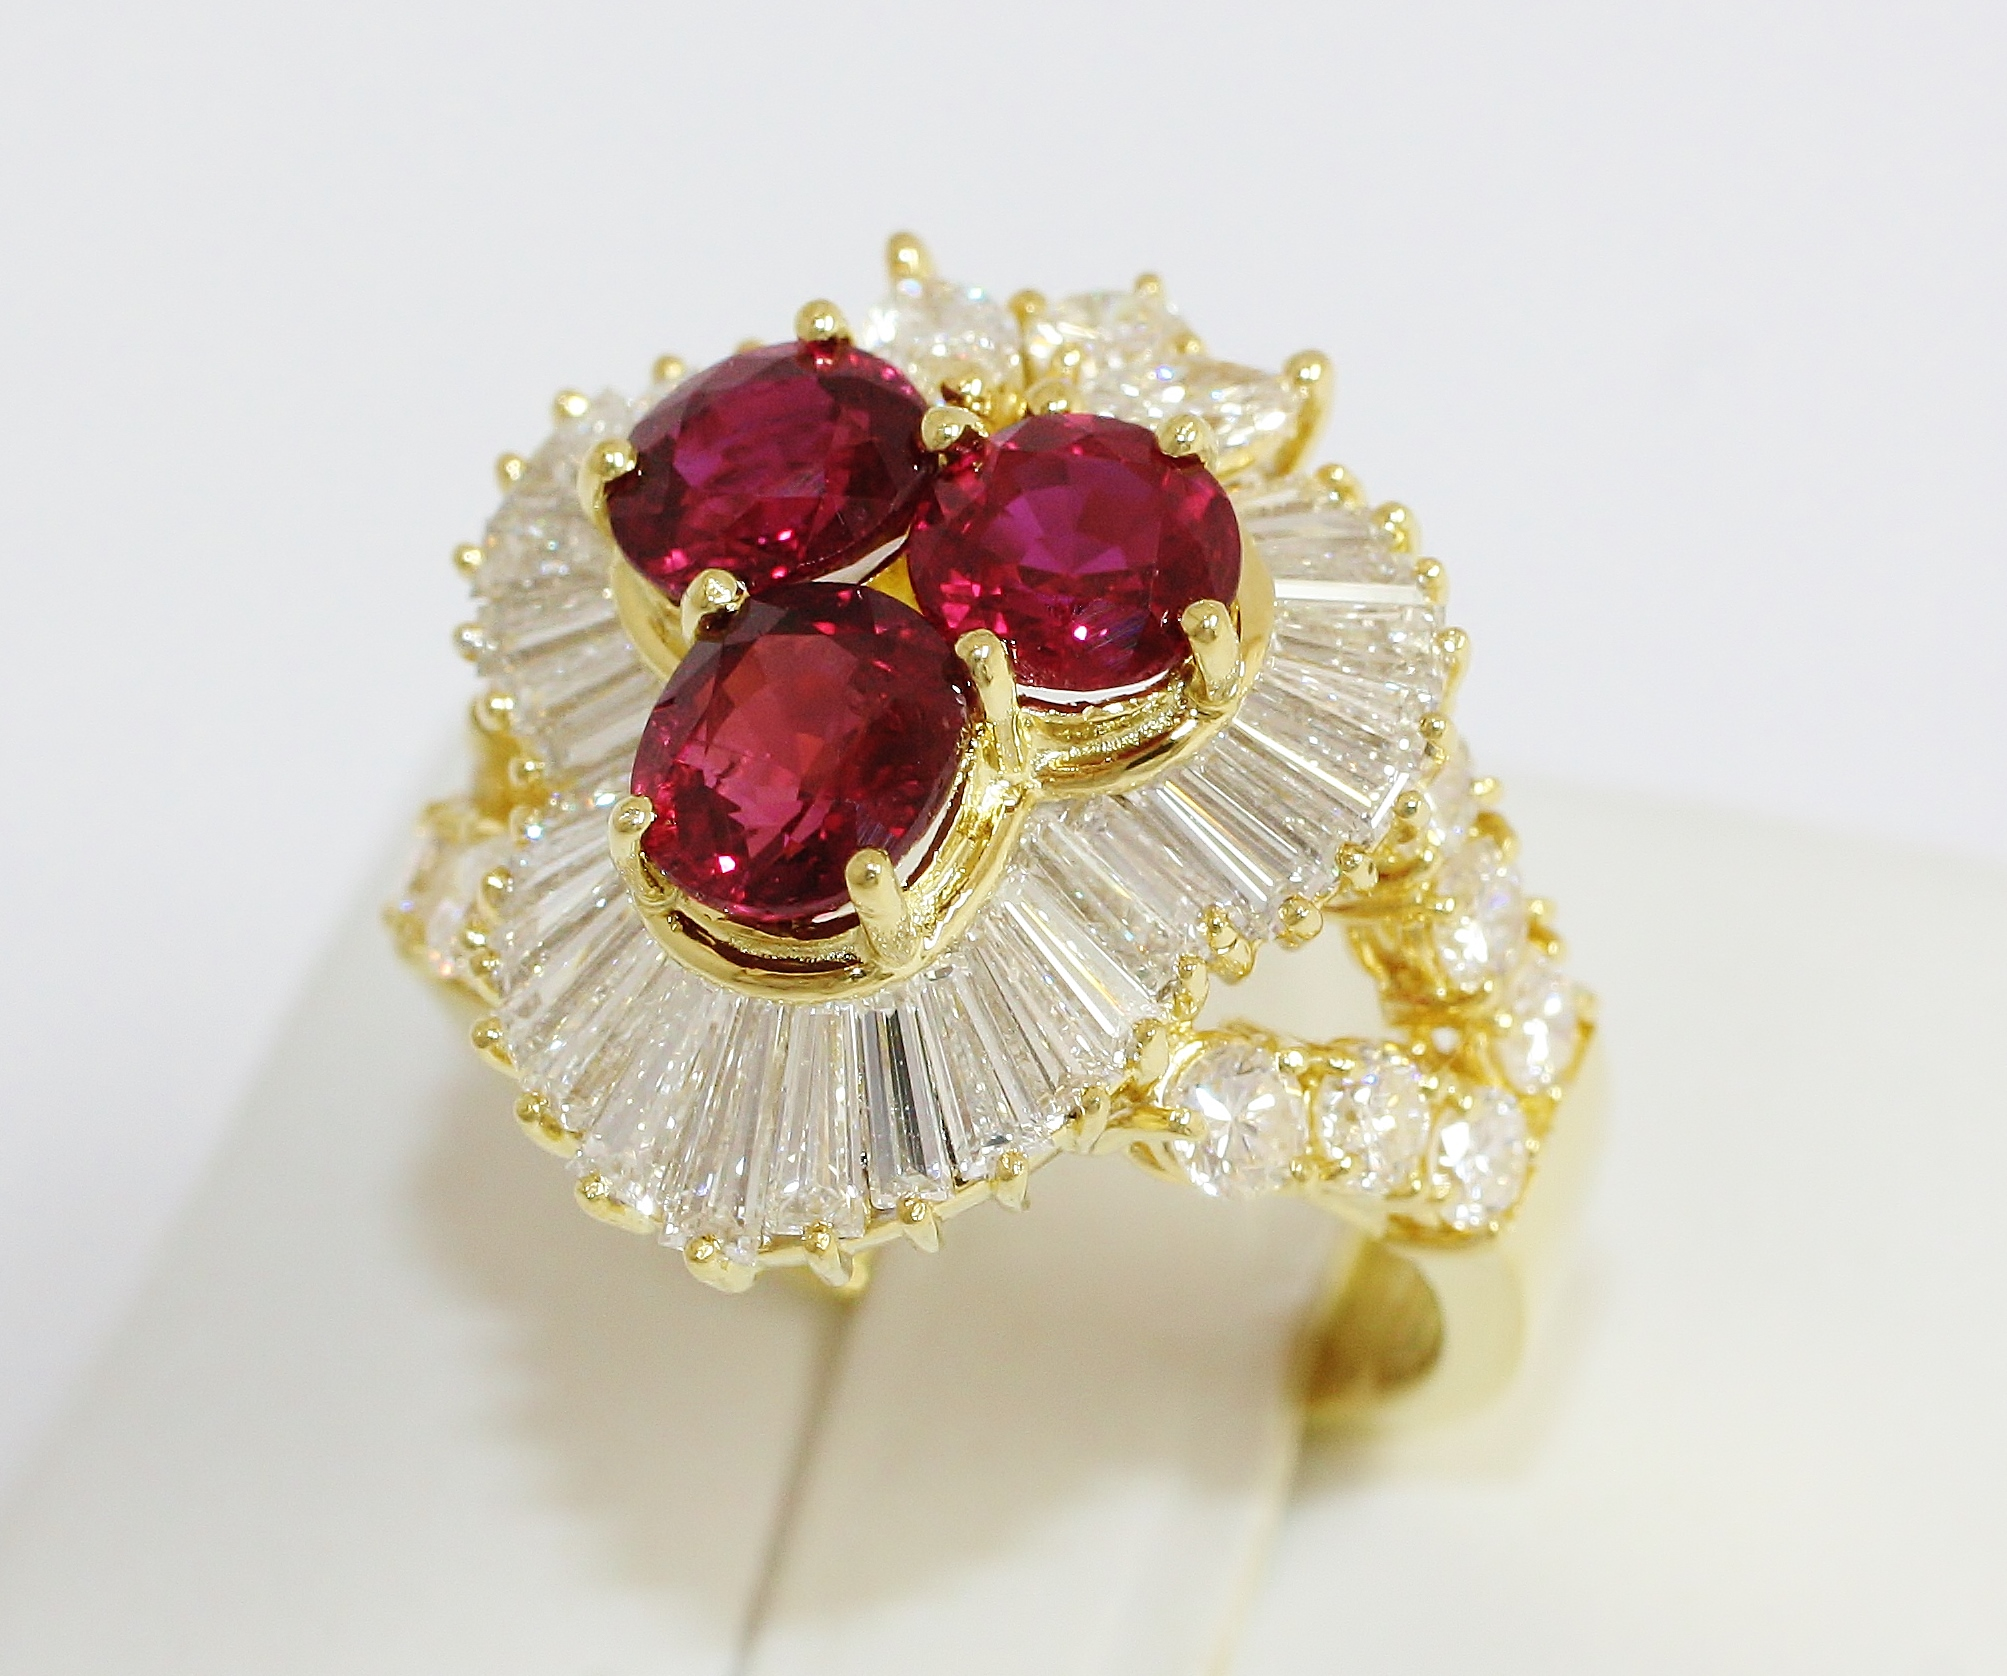 Rubies & Diamonds